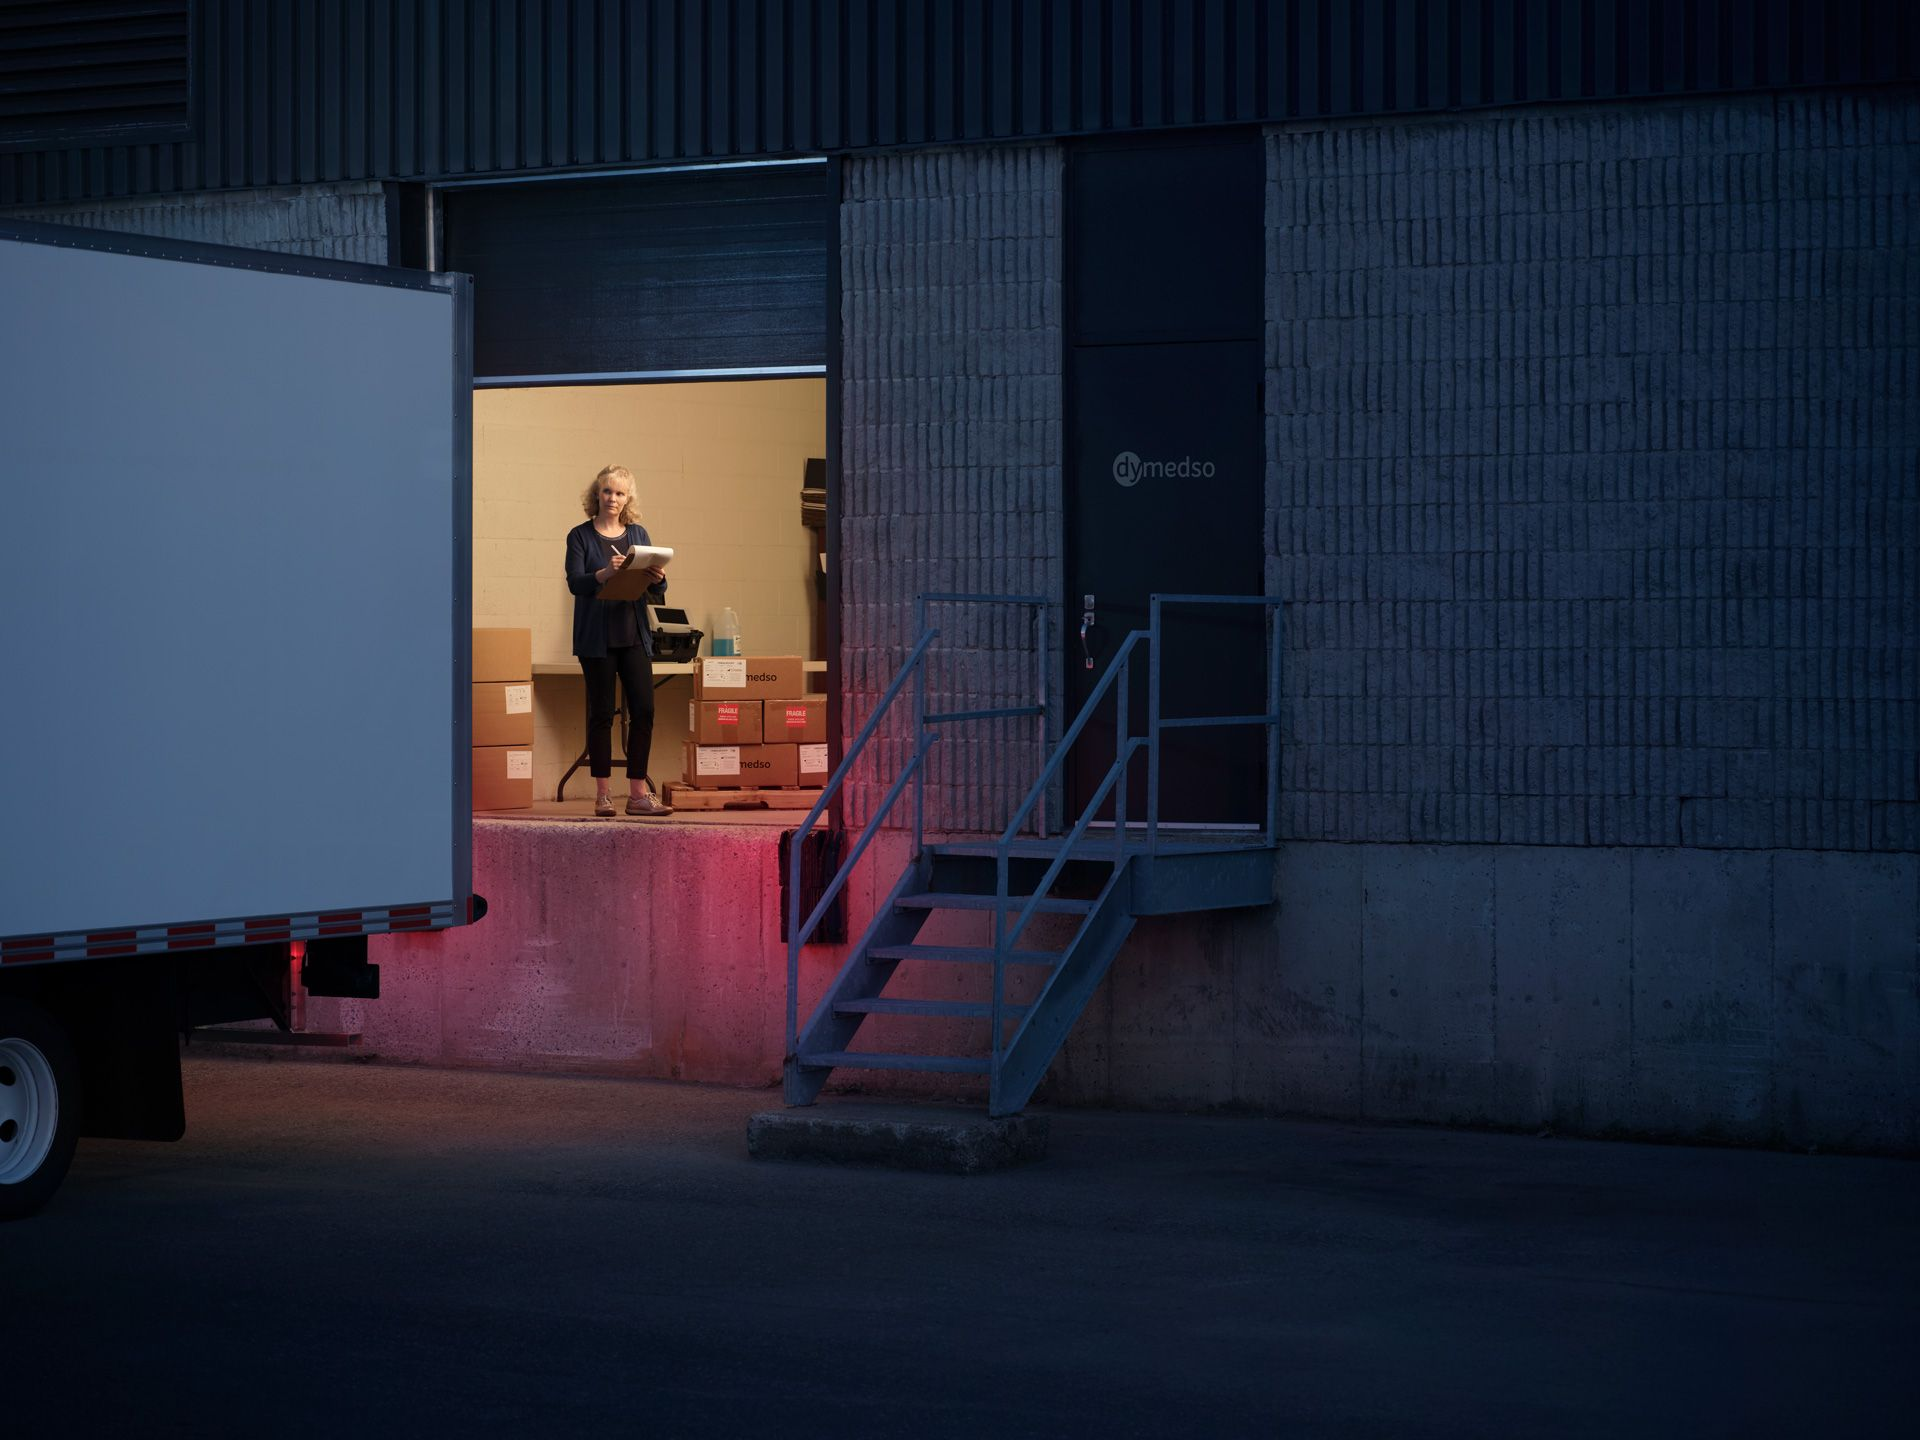 view inside Dymedso loading dock at night with one person working inside photographed by Simon Duhamel for PME MTL in collaboration with K72